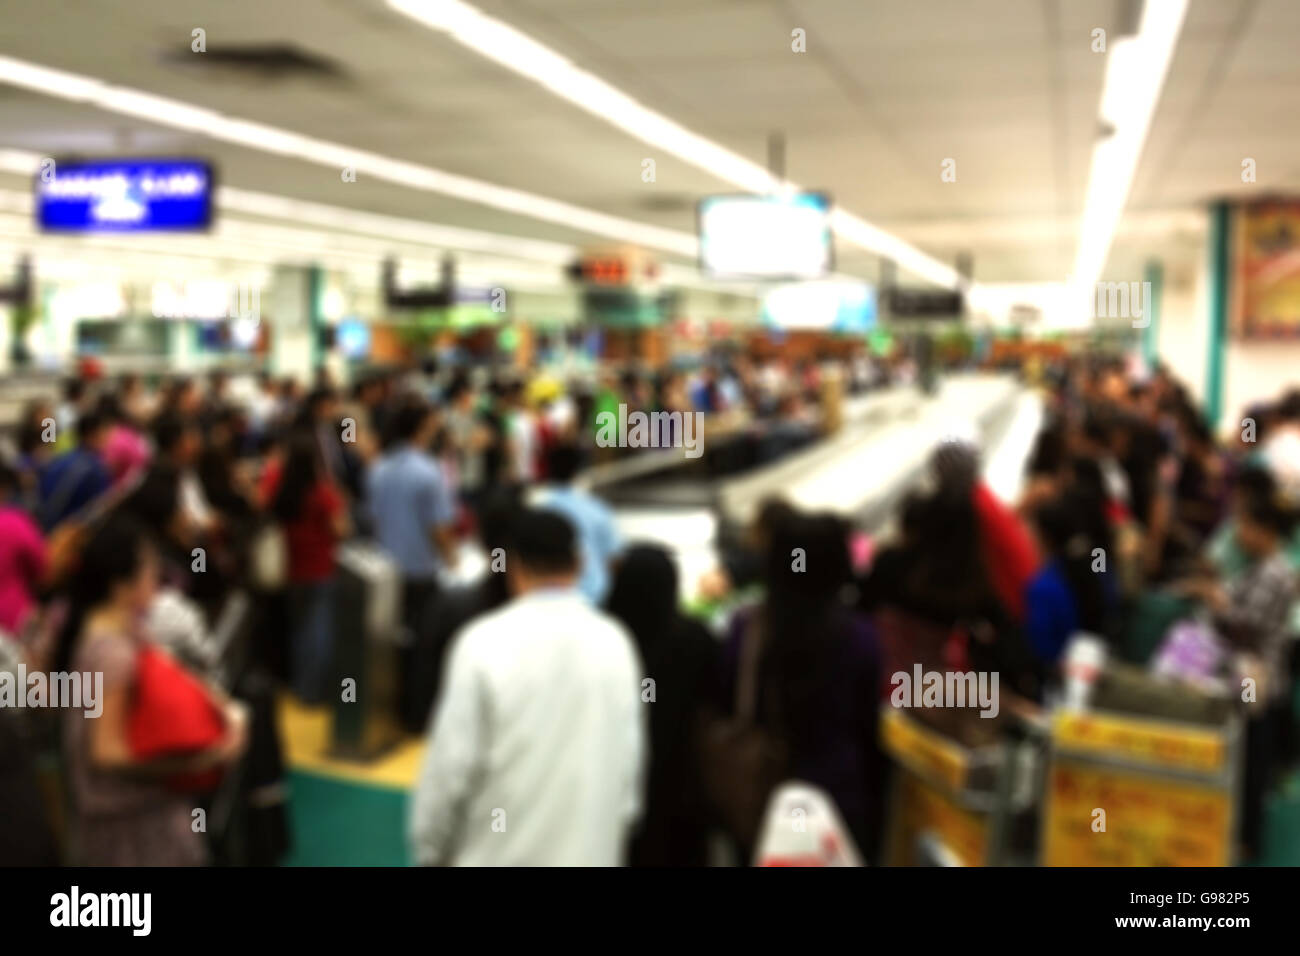 Blurred background of busy baggage claim area at an international airport - Stock Image